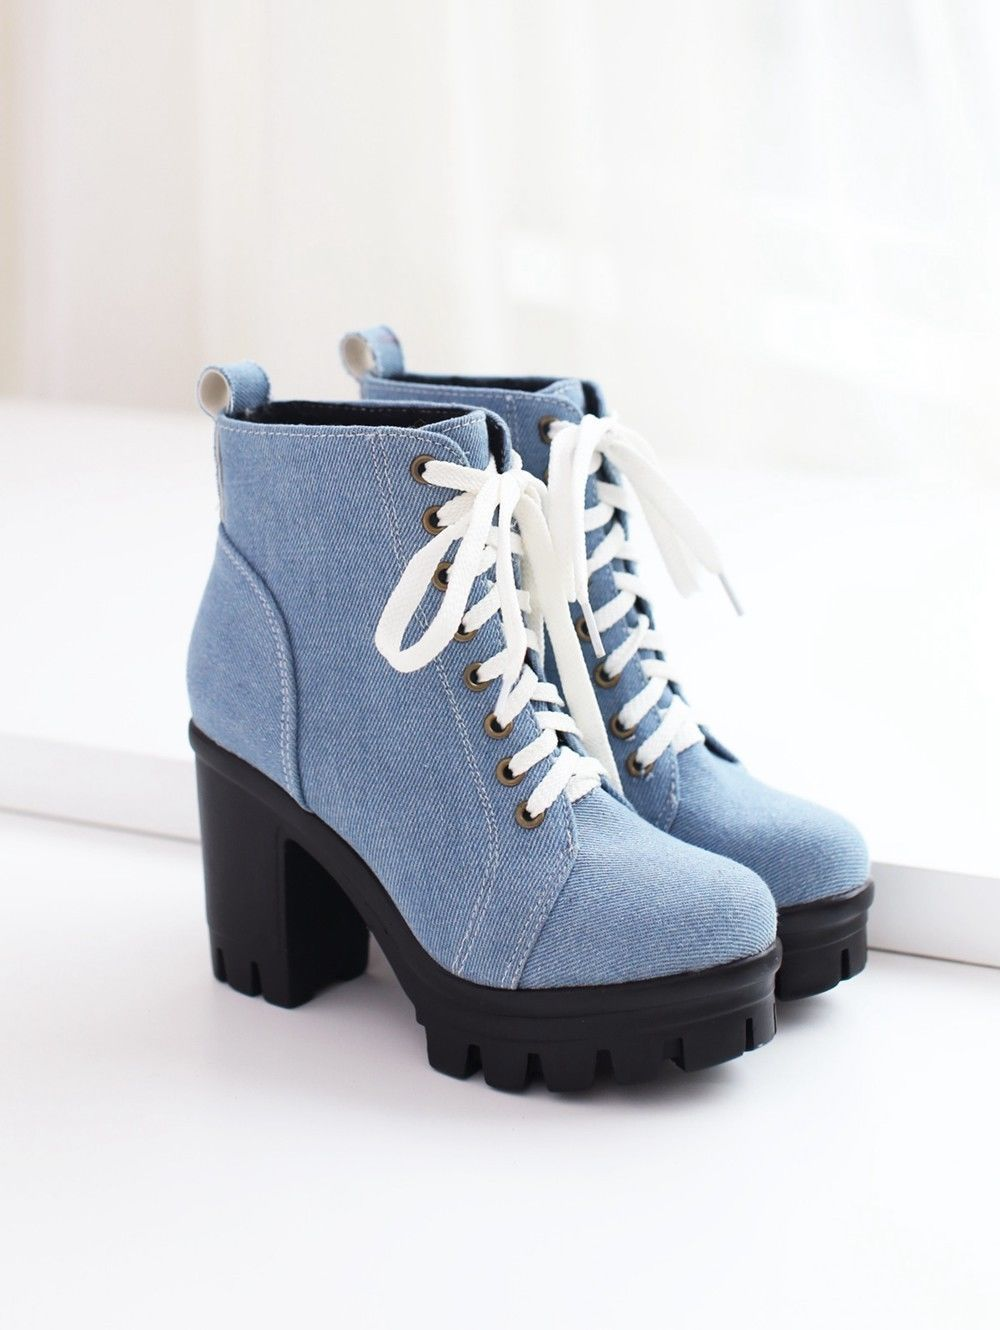 High Block Heel Ankle Boots Shoes